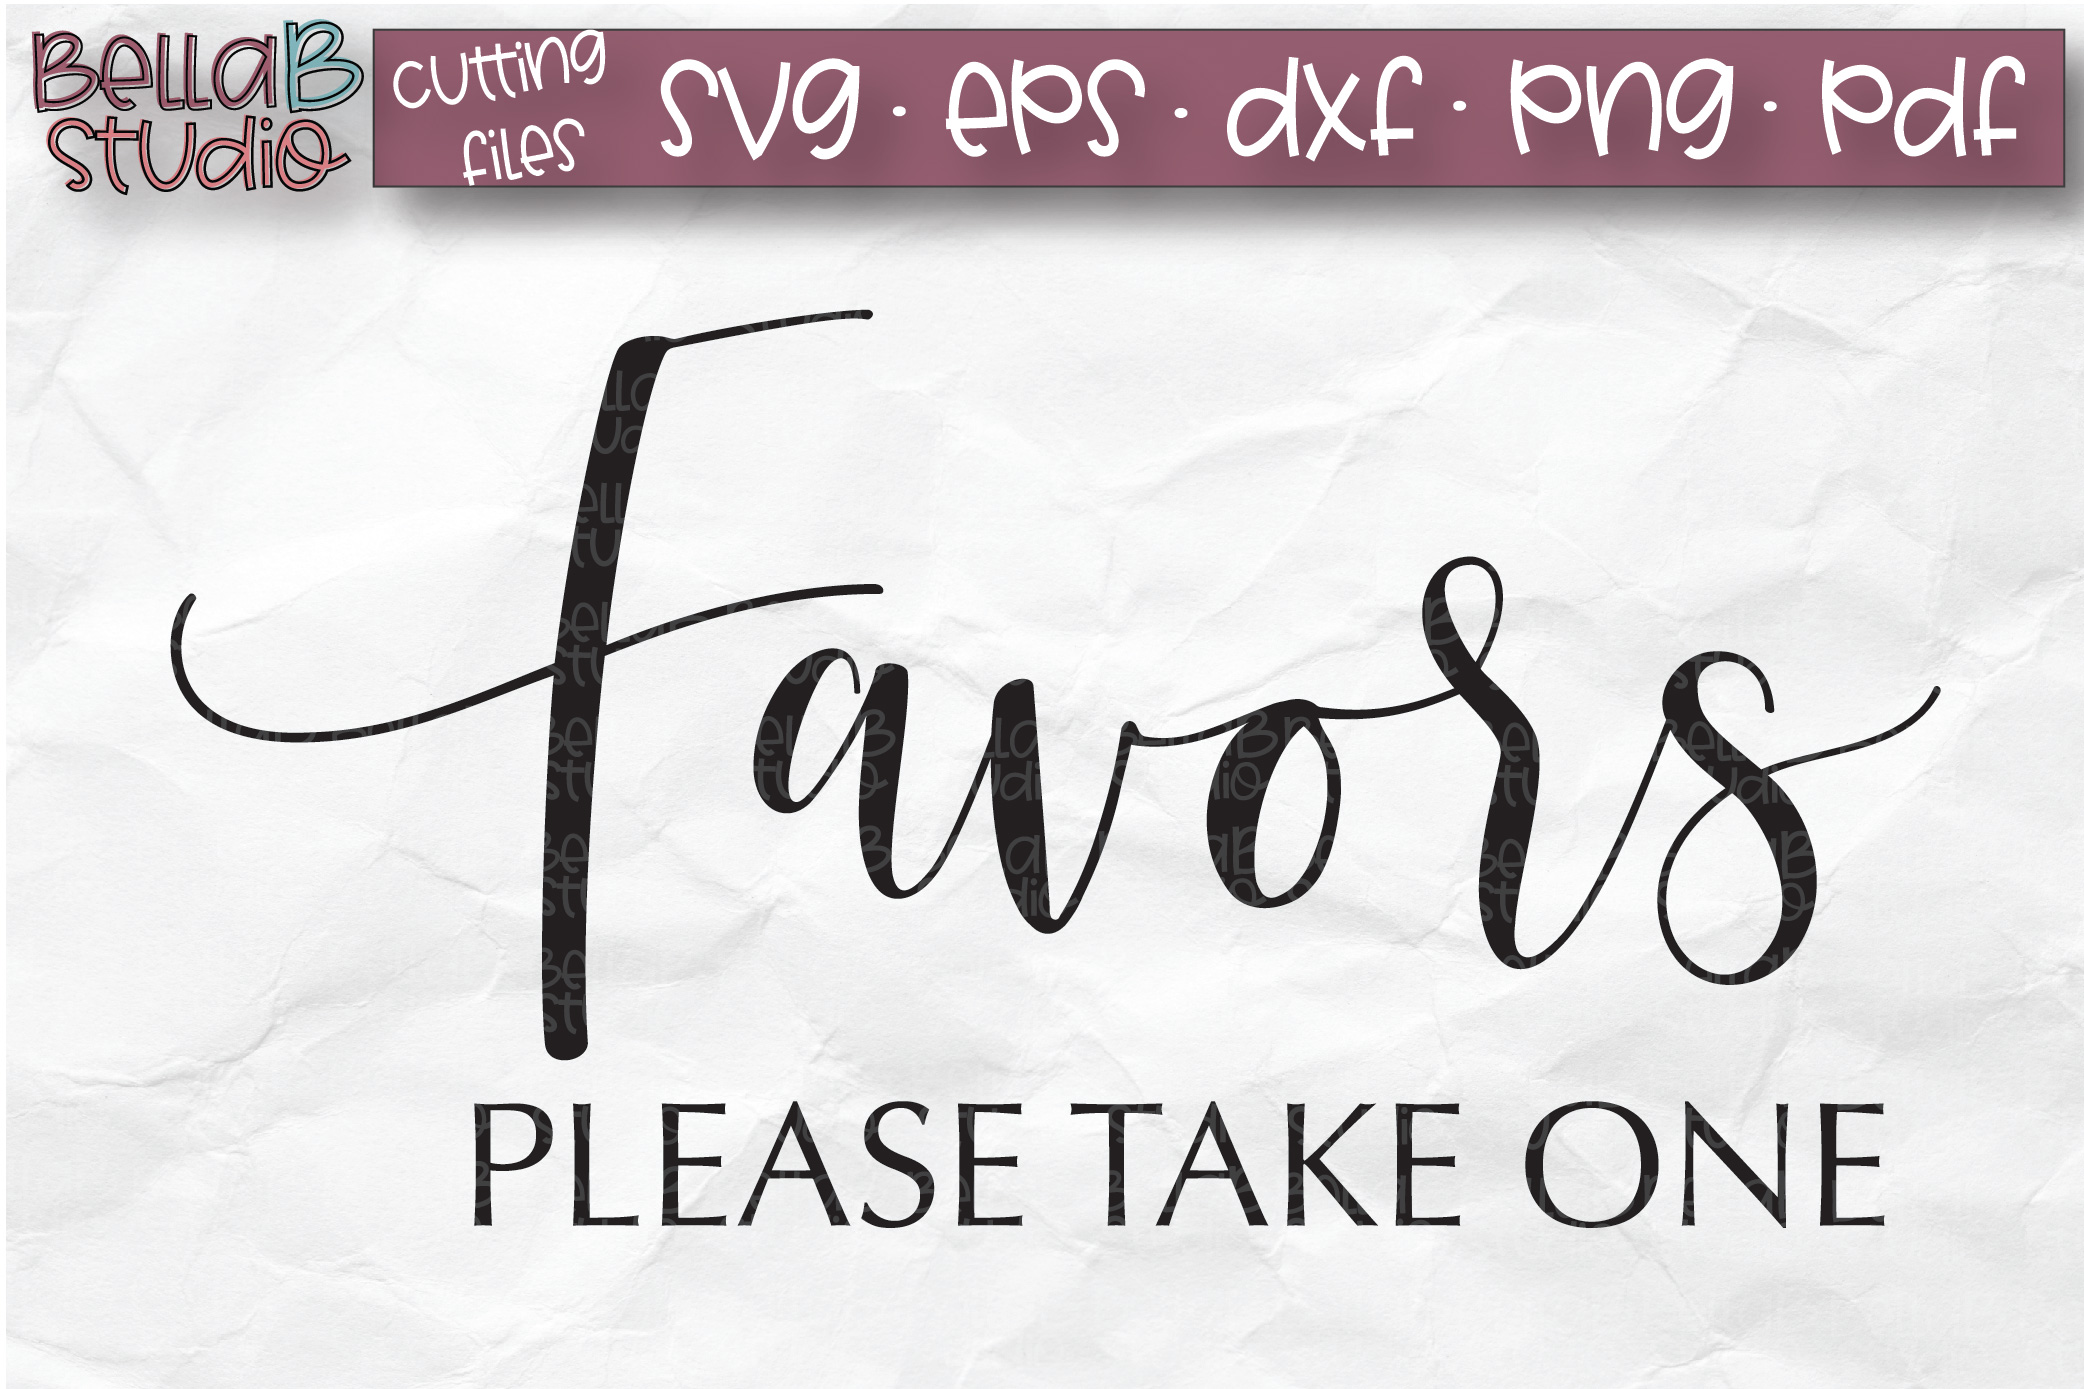 Wedding Sign SVG, Favors Please Take One SVG, Wedding SVG example image 2